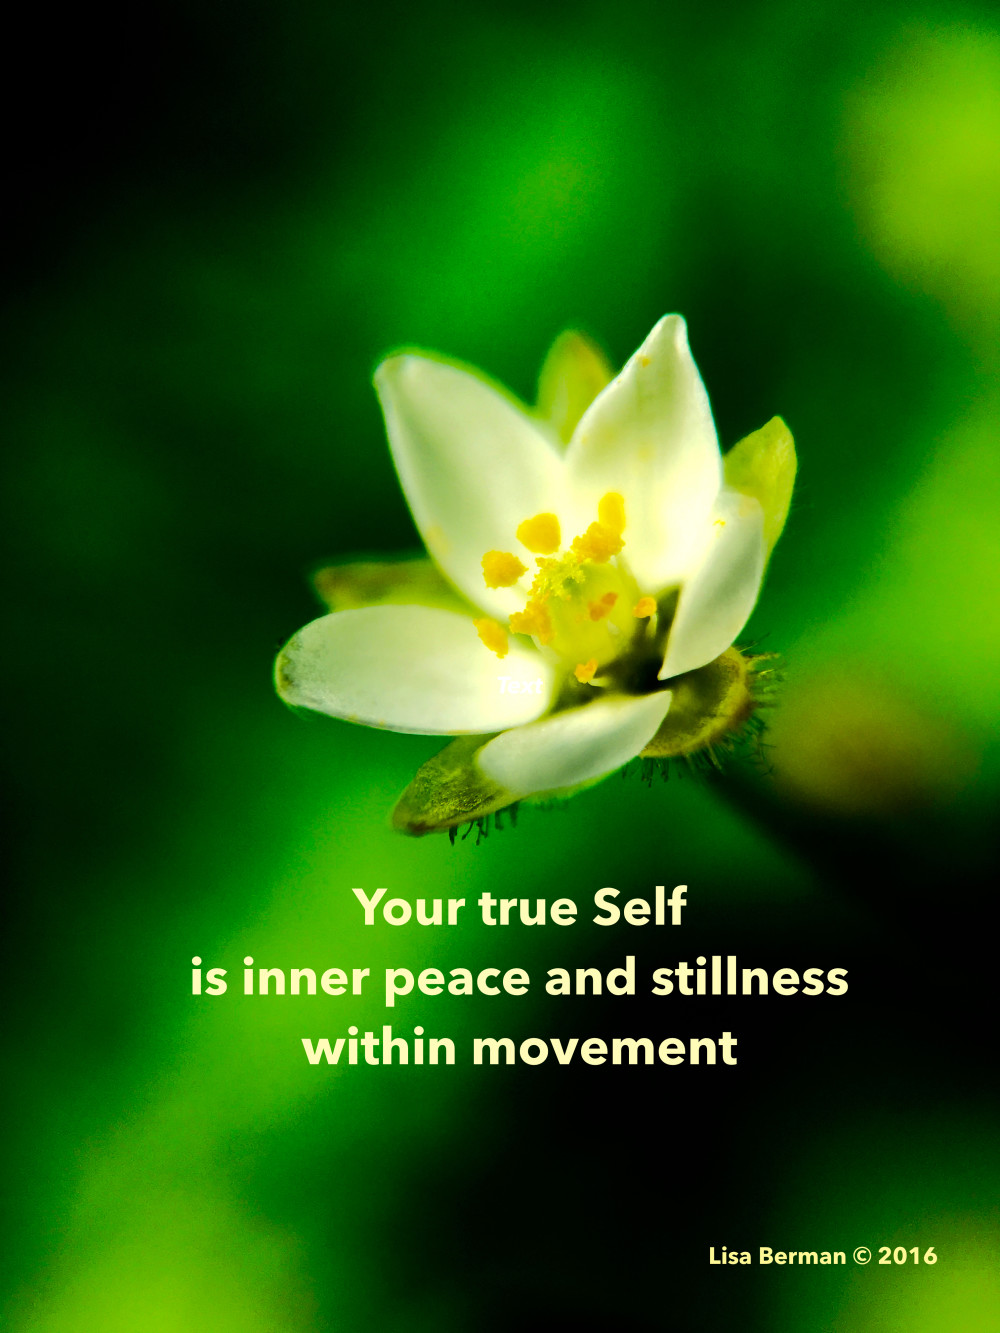 Your true Self is inner peace and stillness within movement